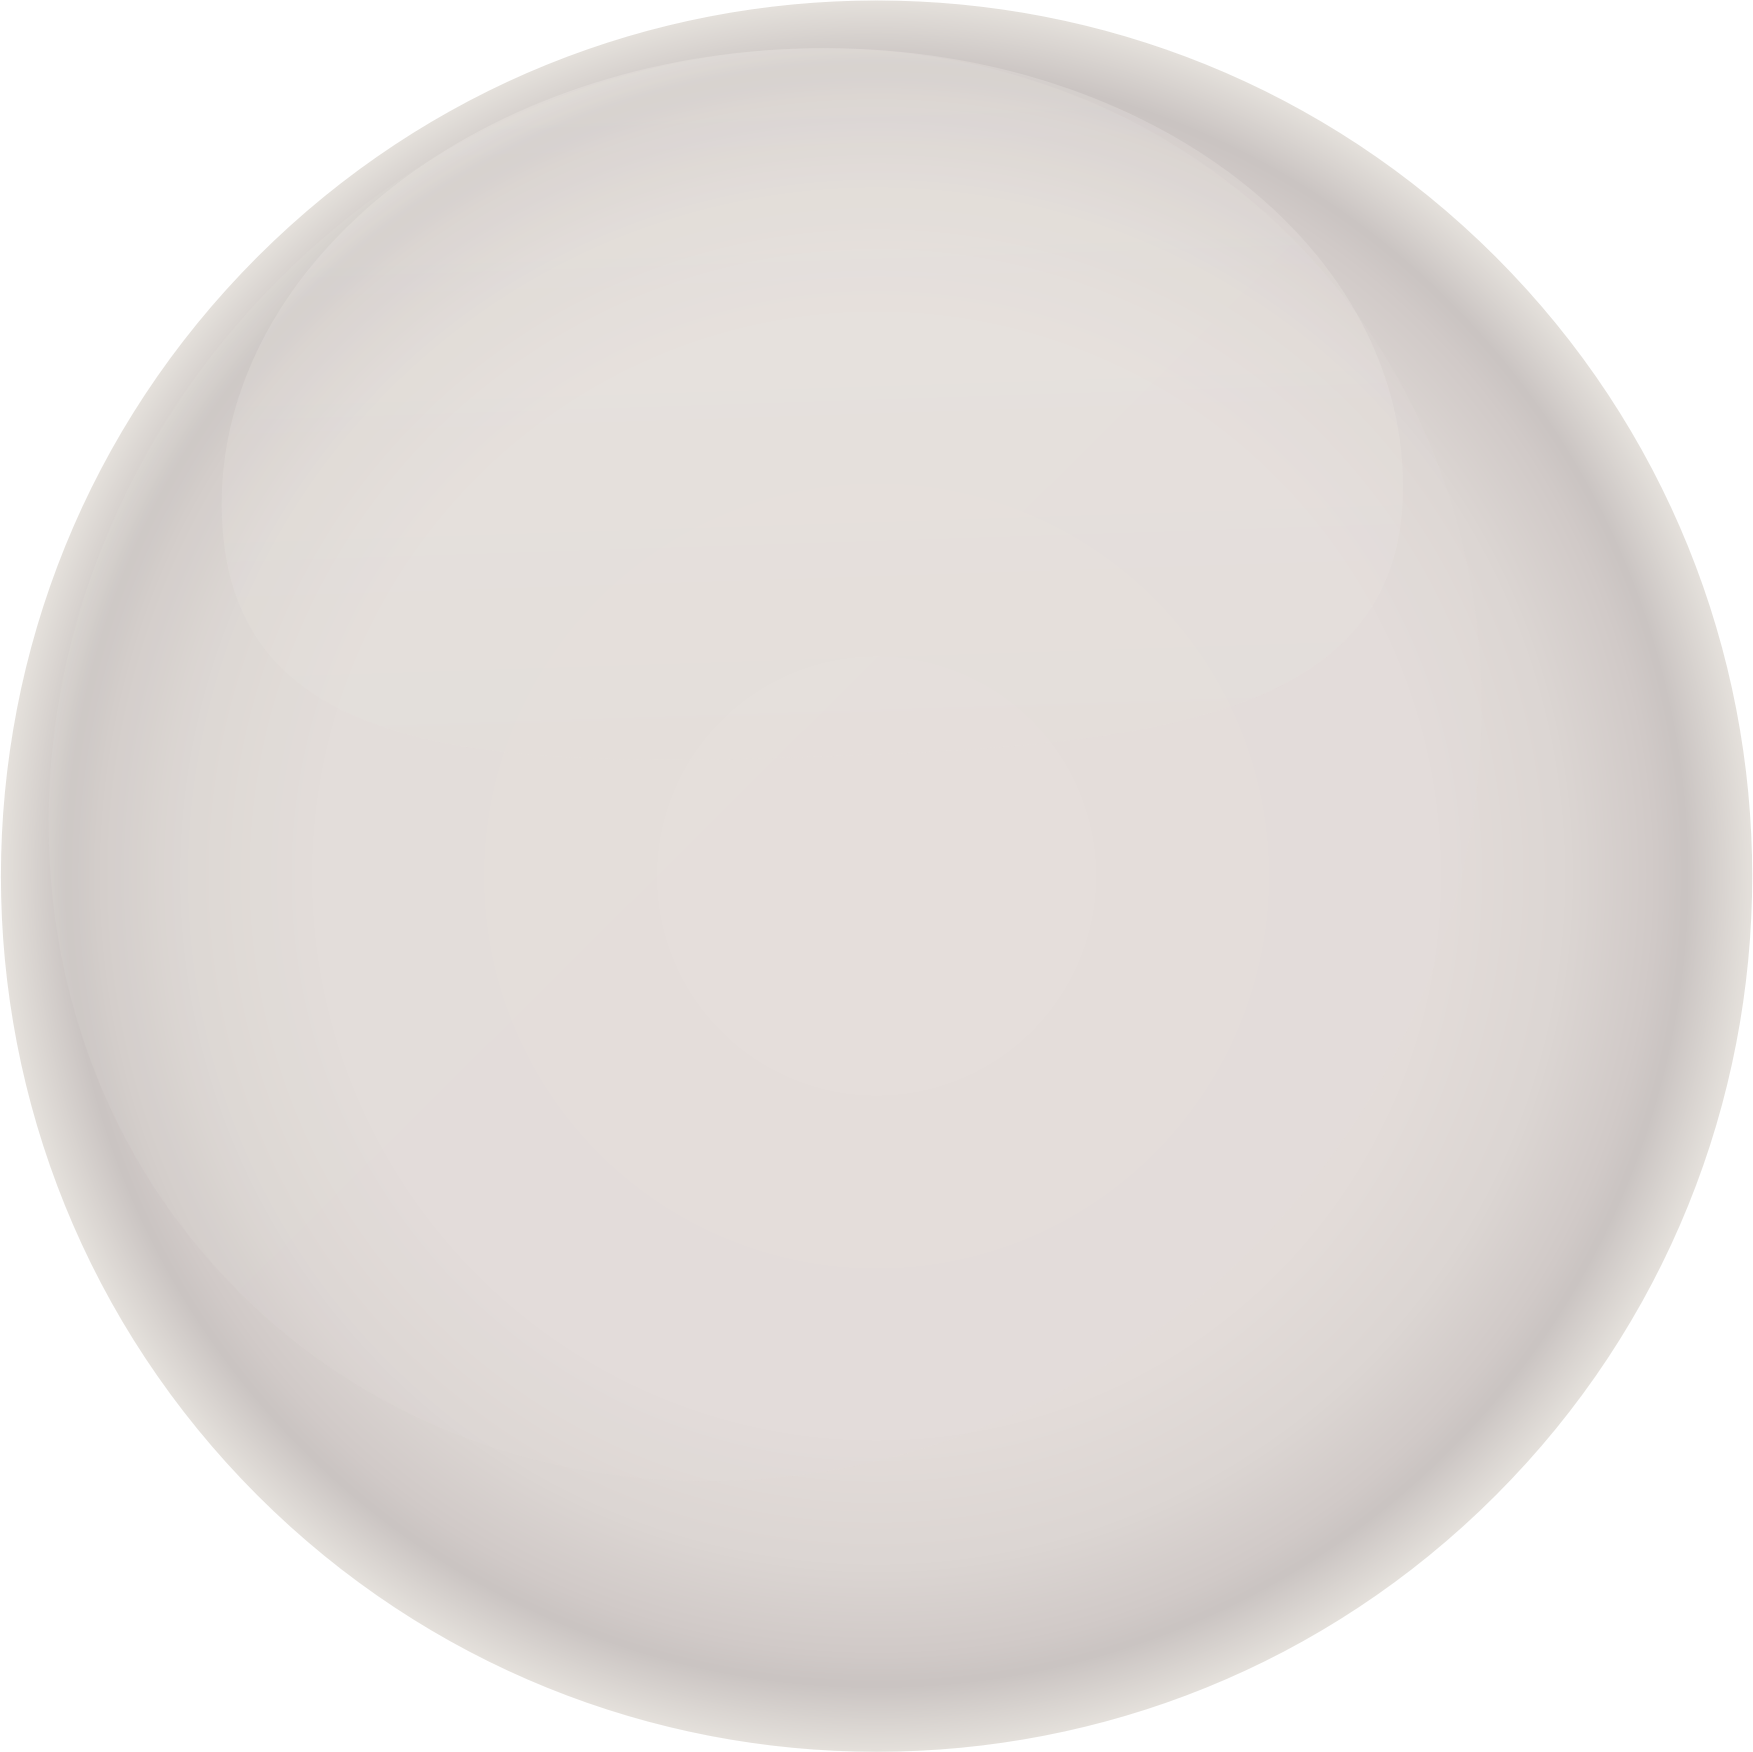 white sphere png